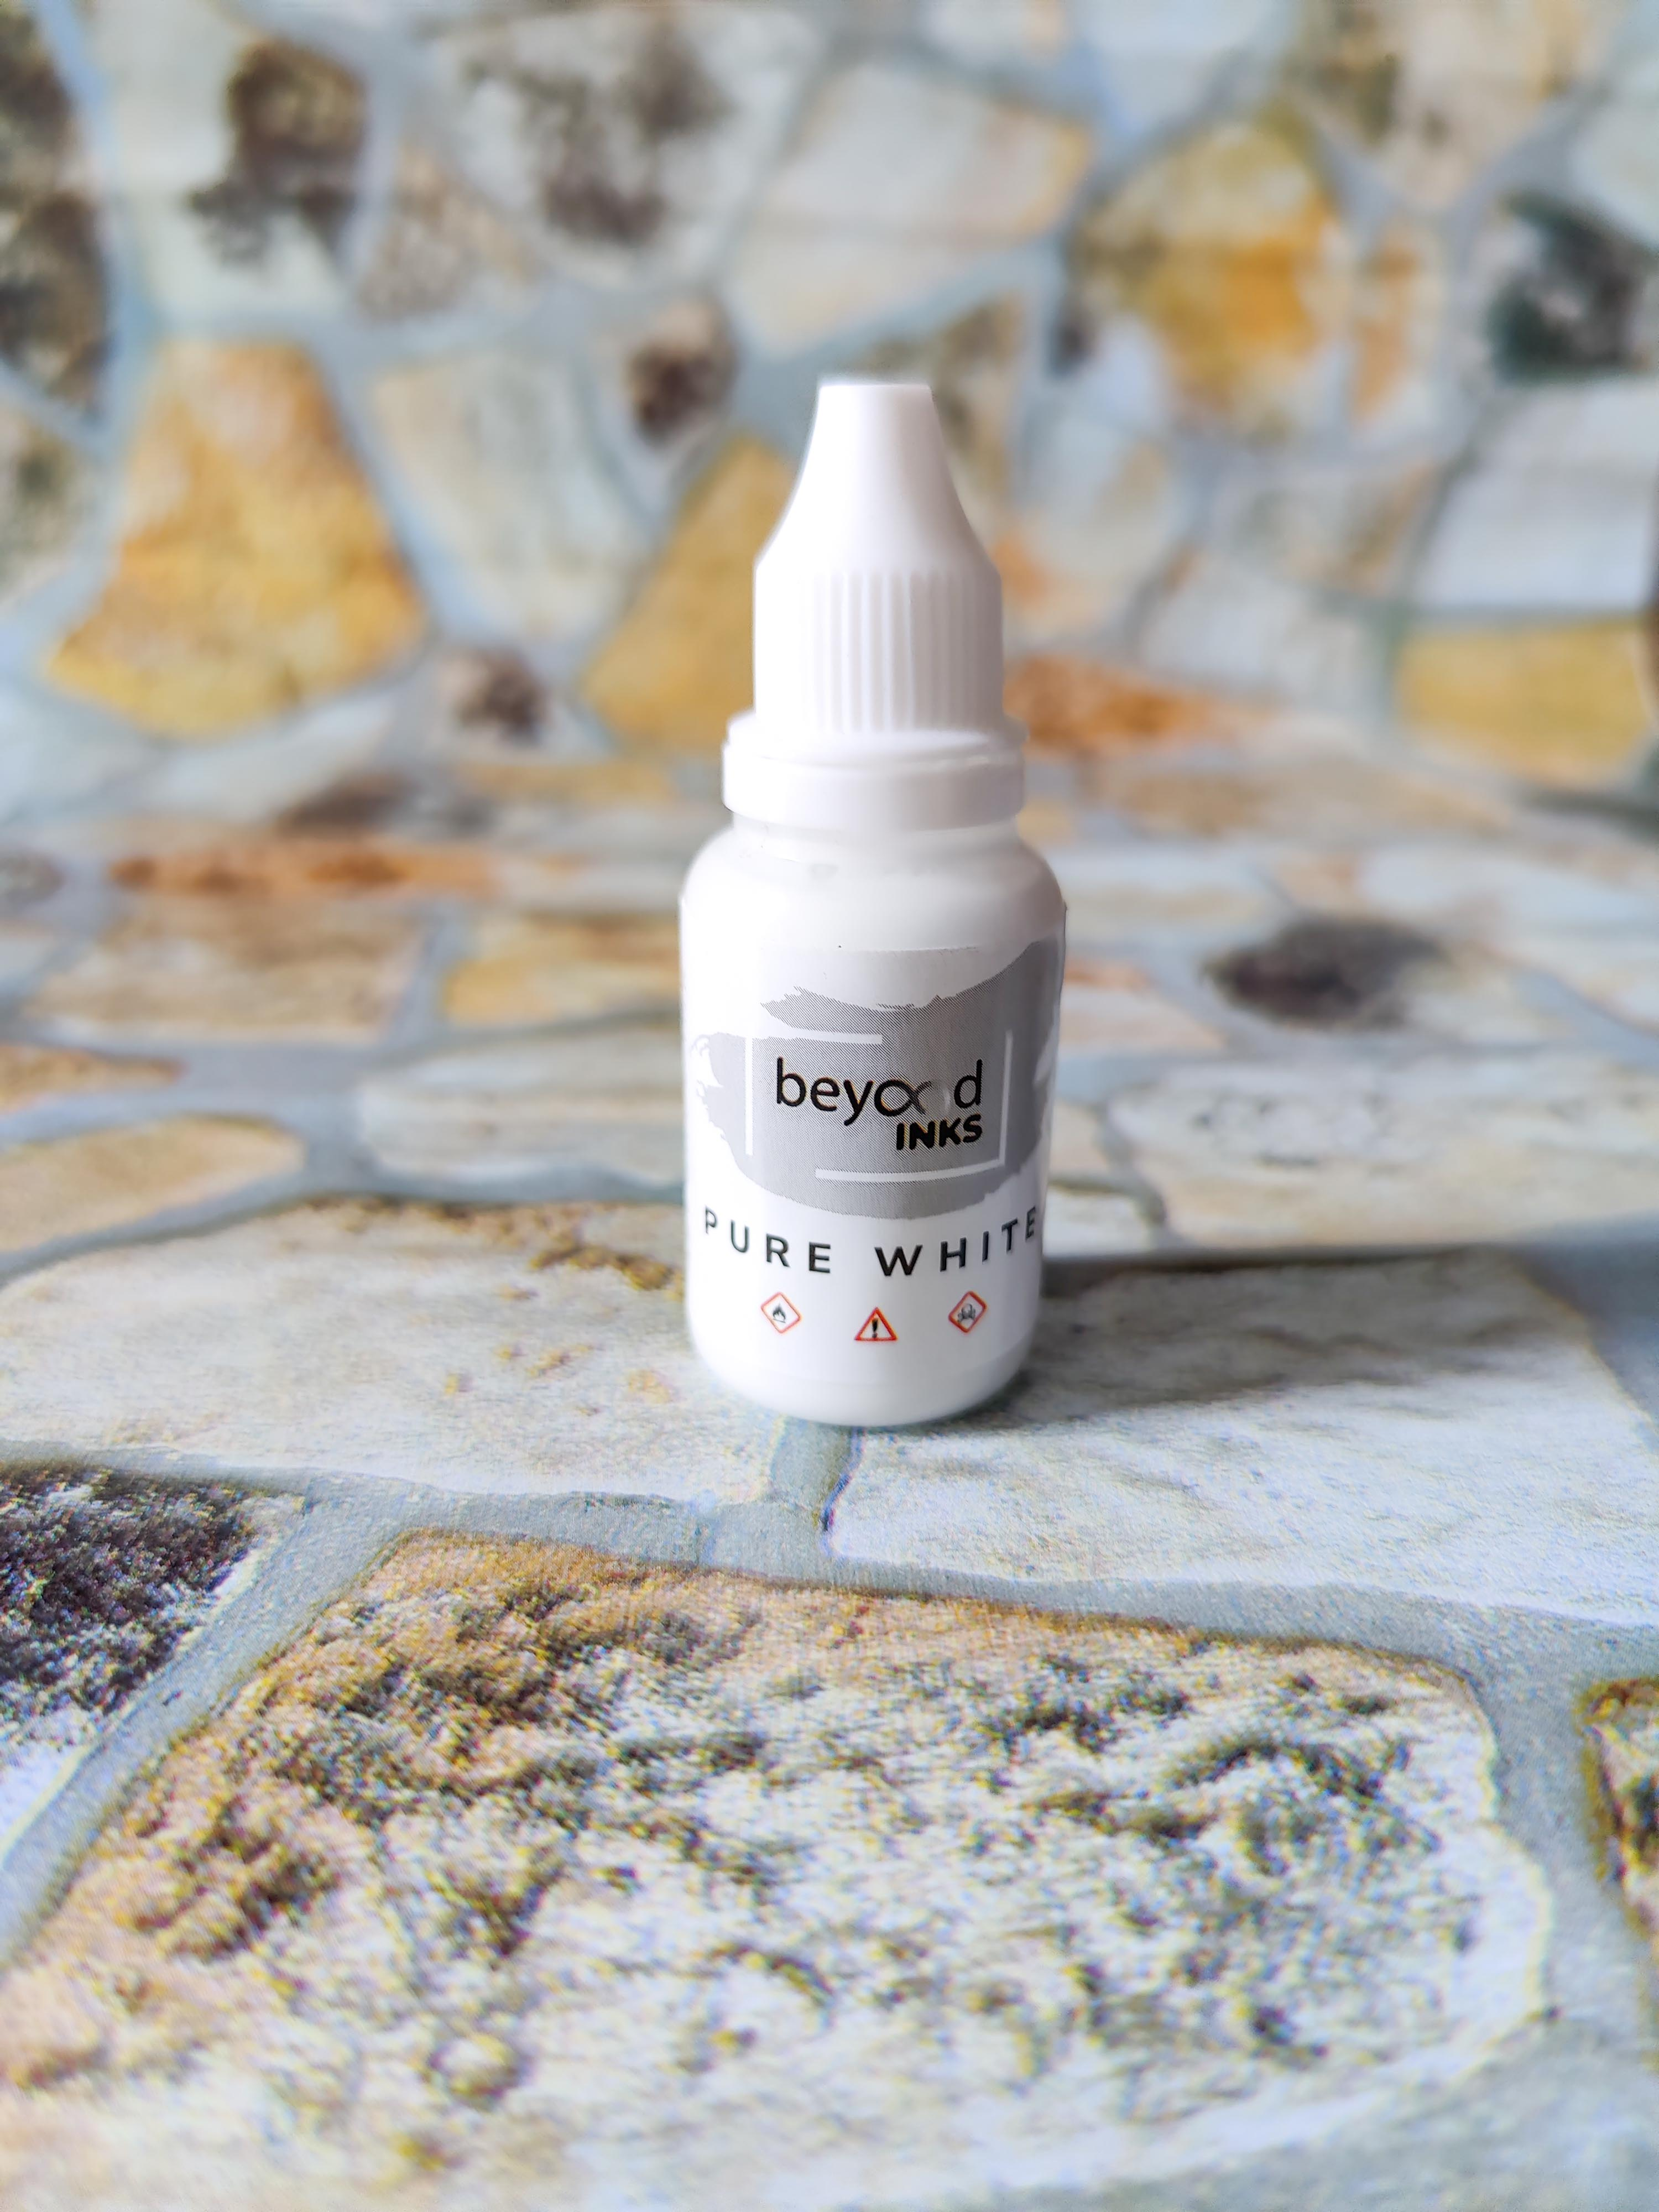 Beyondinks White Alcohol Ink Resin SInker